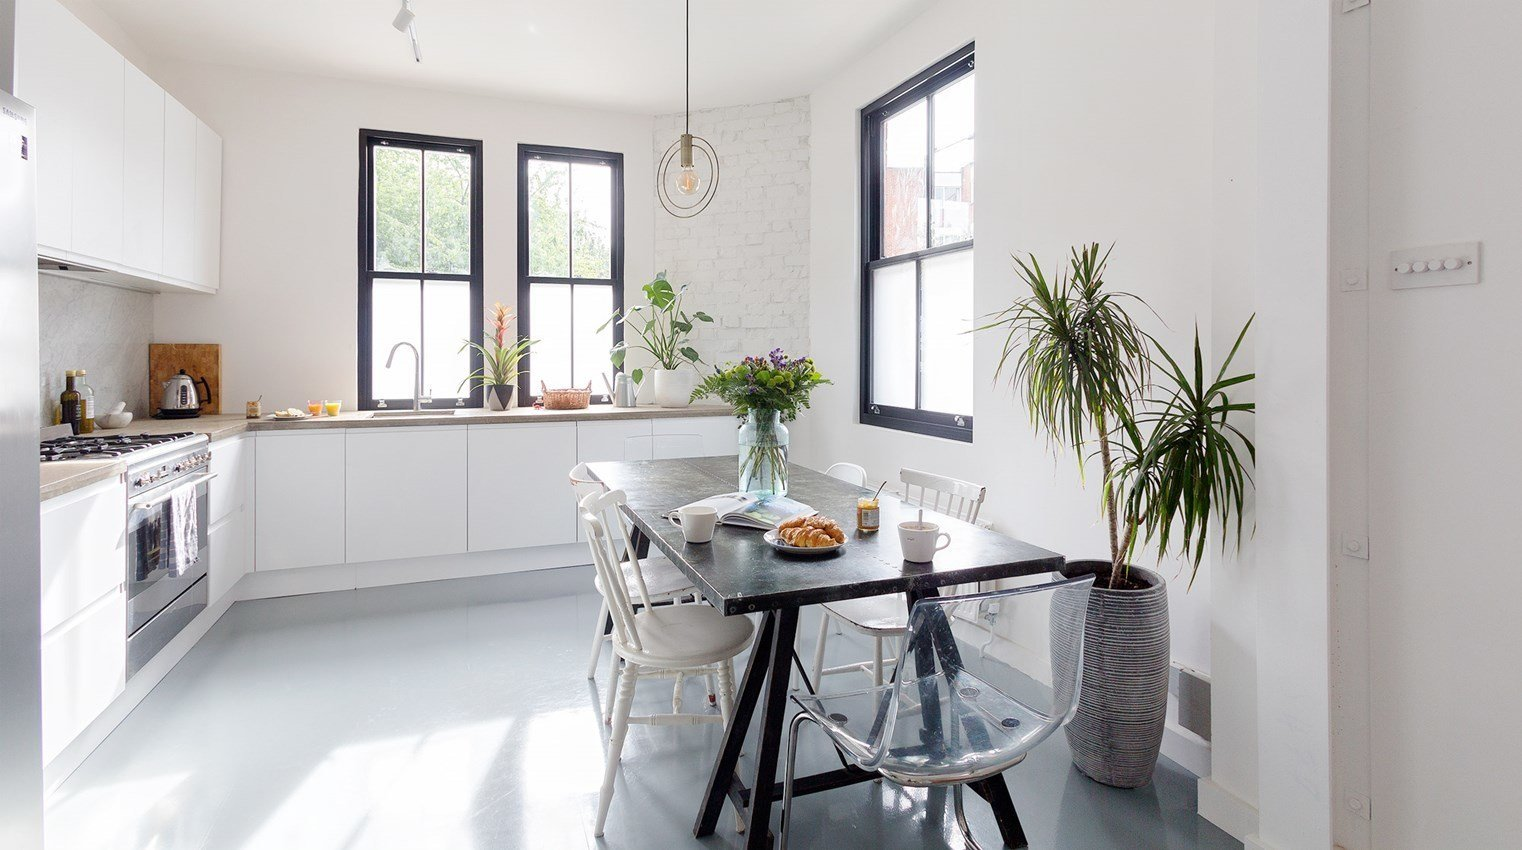 A refurbished townhouse in Bethnal Green, an area with an increasing number of restaurants, bars and vintage shops, The Old Eastender has plenty of natural light, a bright an airy kitchen and bedrooms with warm wooden floors.  Photo 2 of 10 in Soak Up the Creative Vibes of London's East End at One of These Rental Homes or Hotels